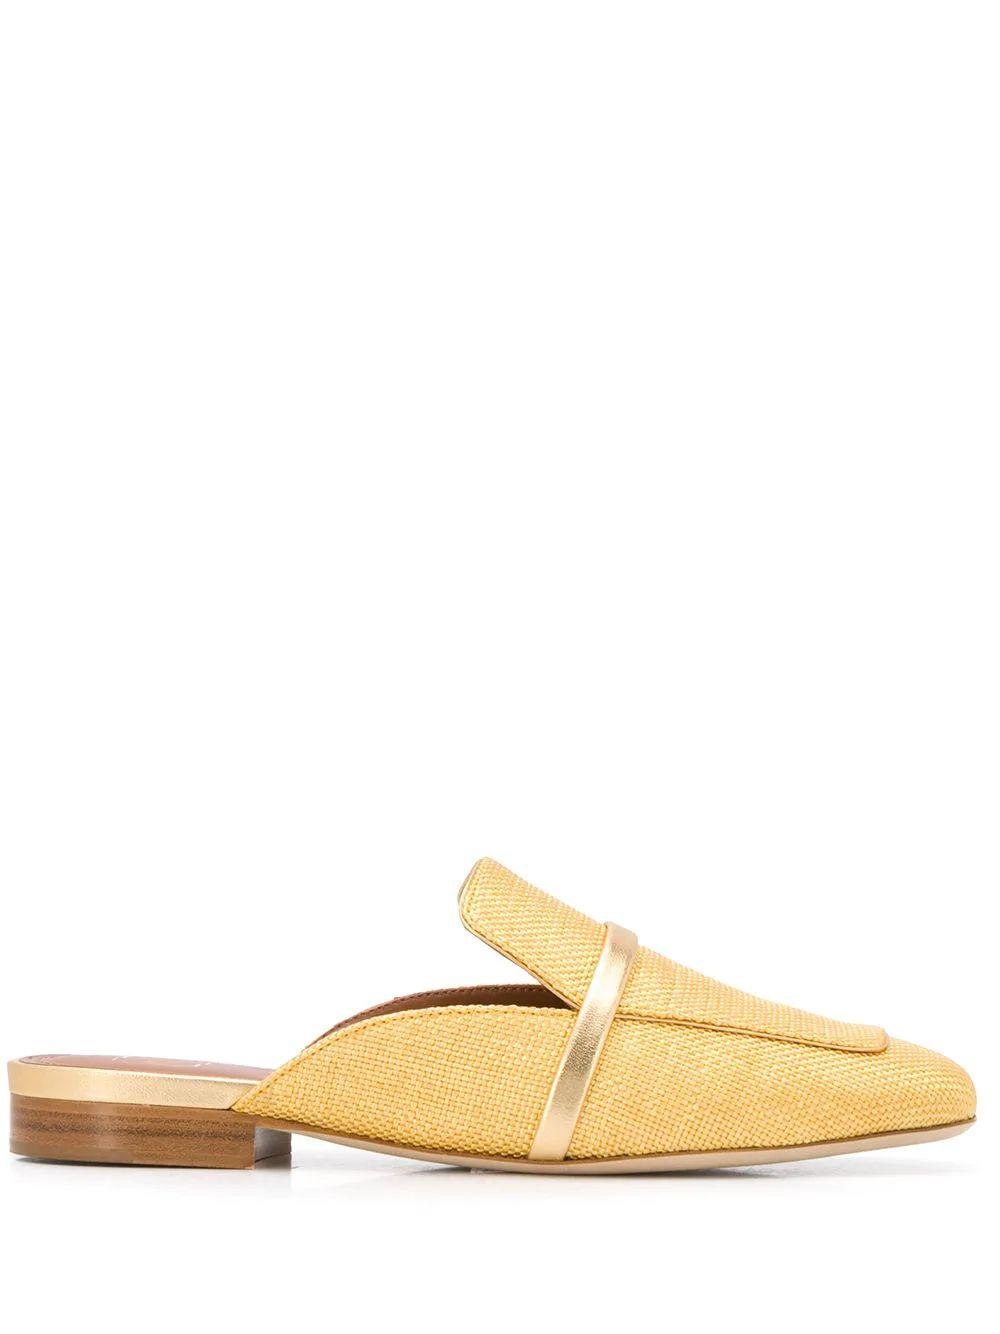 Raffia Metallic 10mm Flat Mule Item # JADA-FLAT11